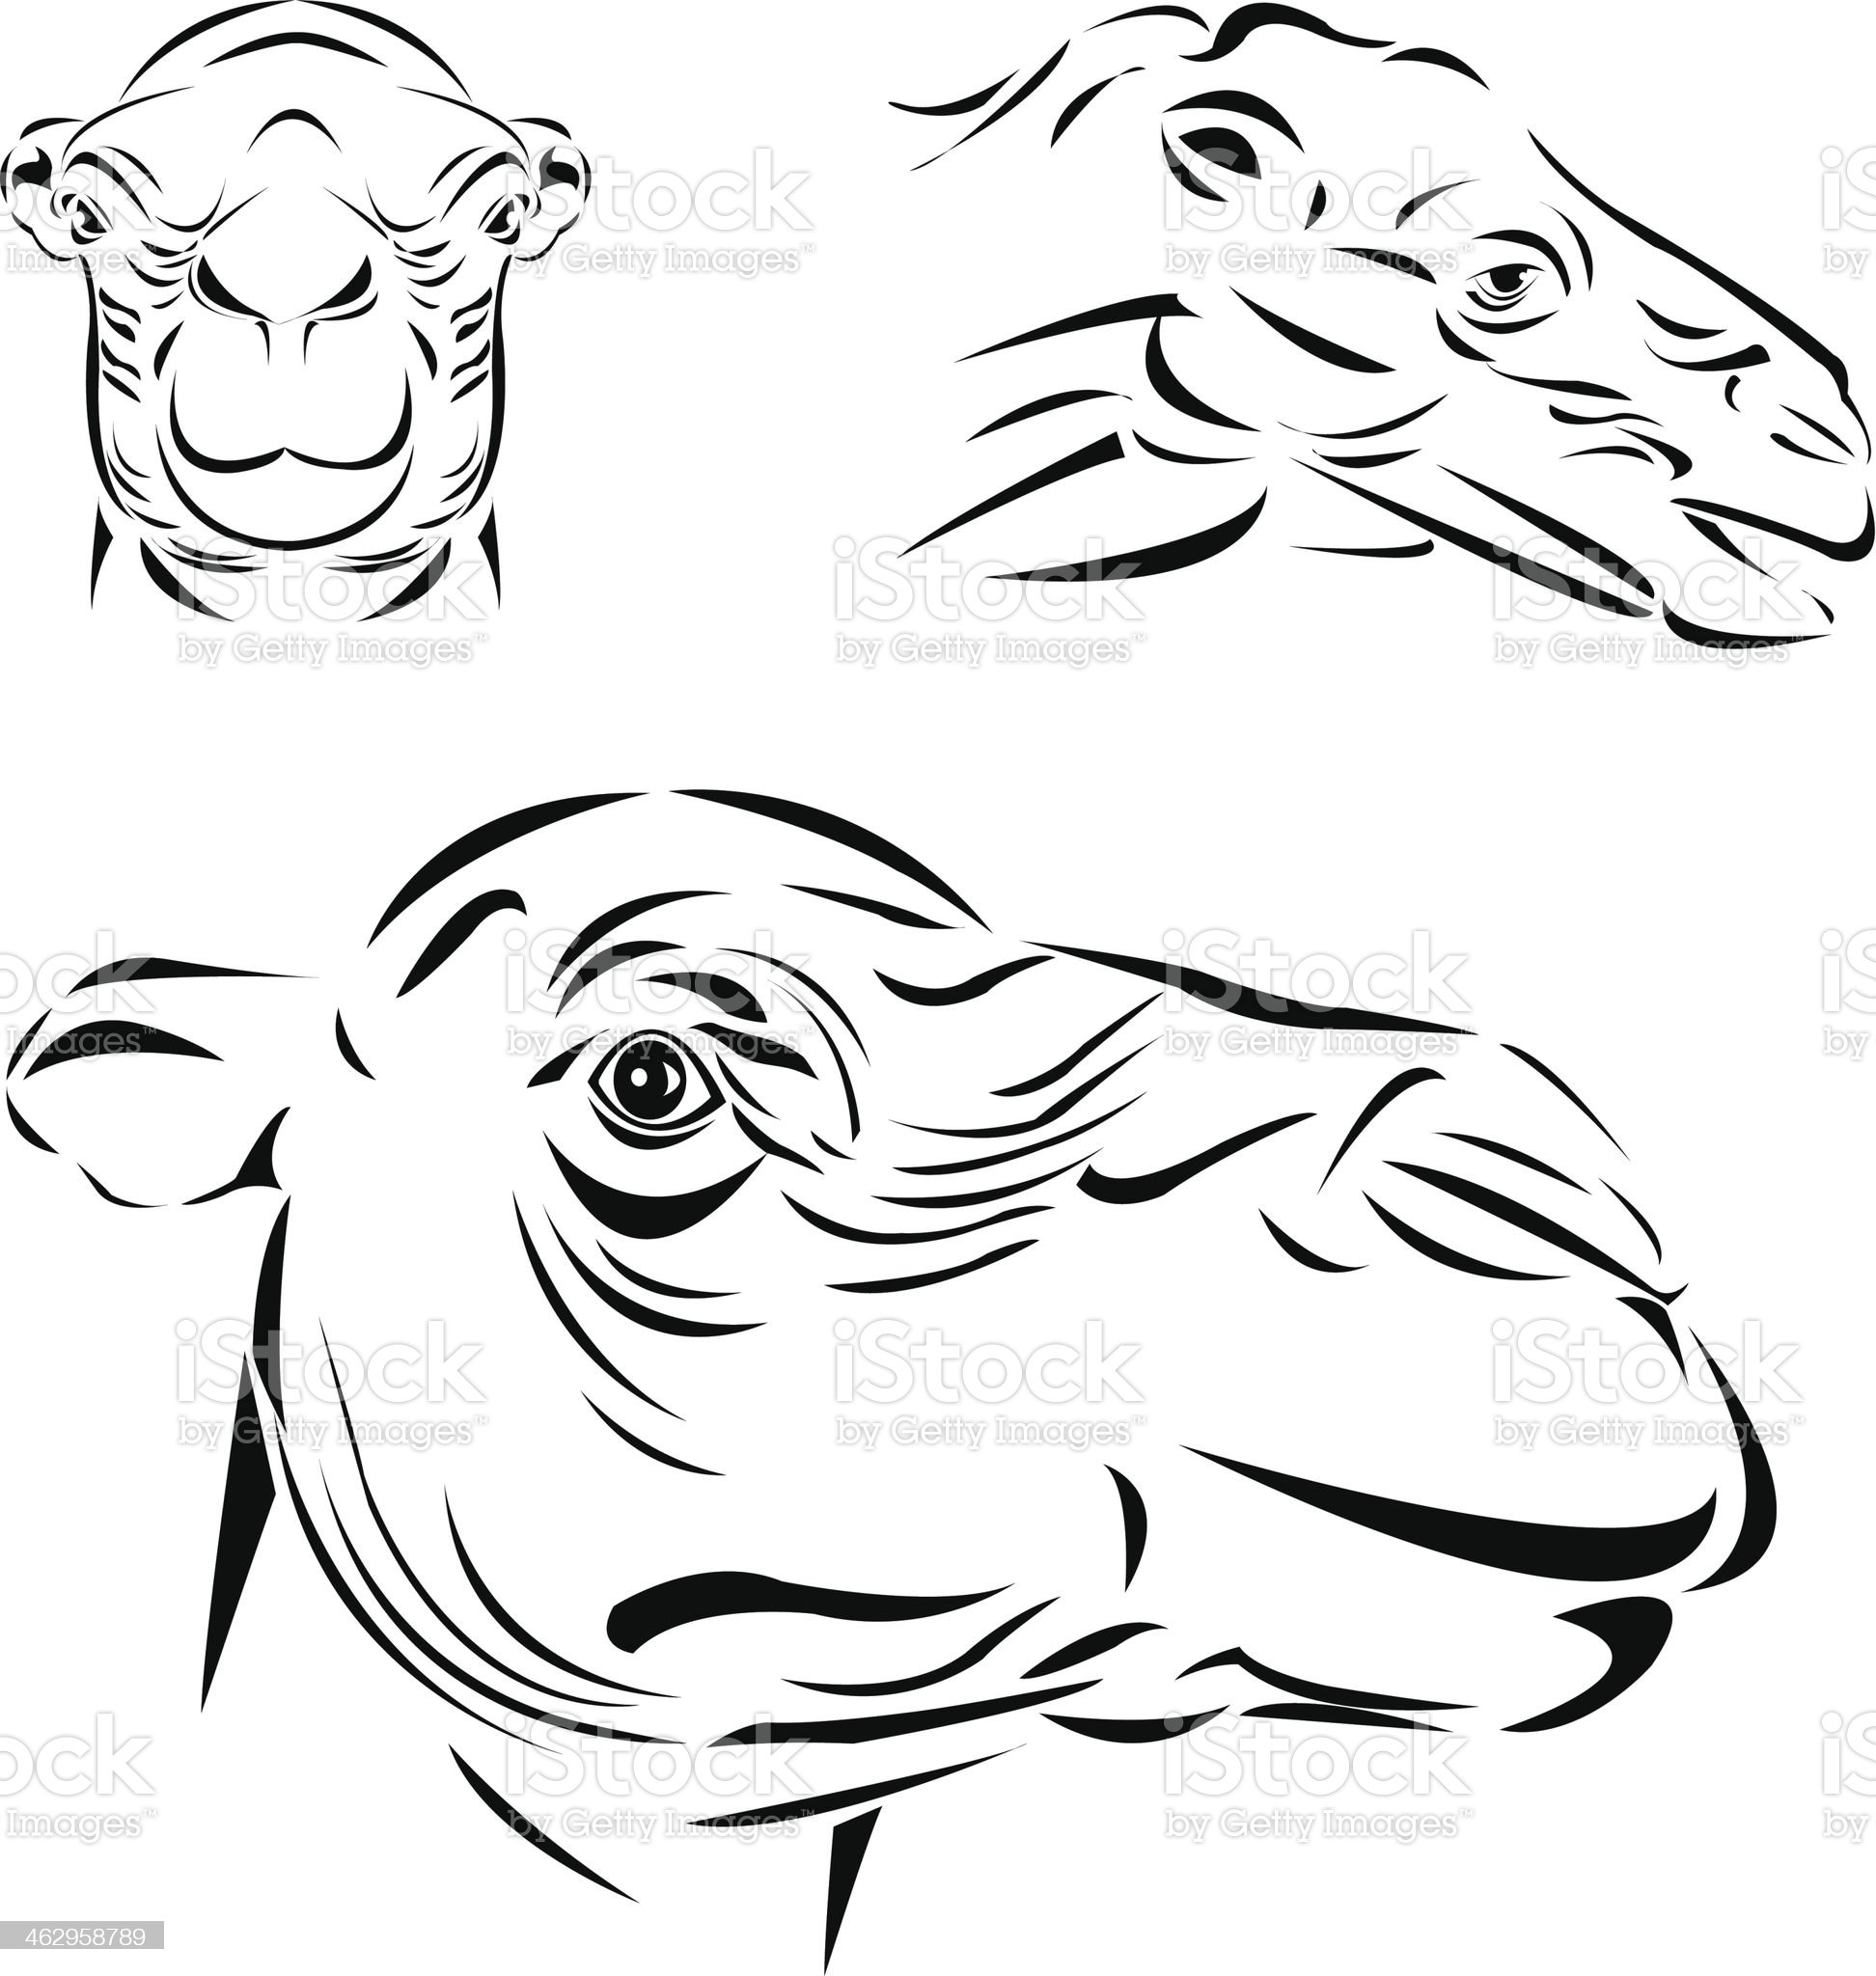 Line art_Camel royalty-free stock vector art